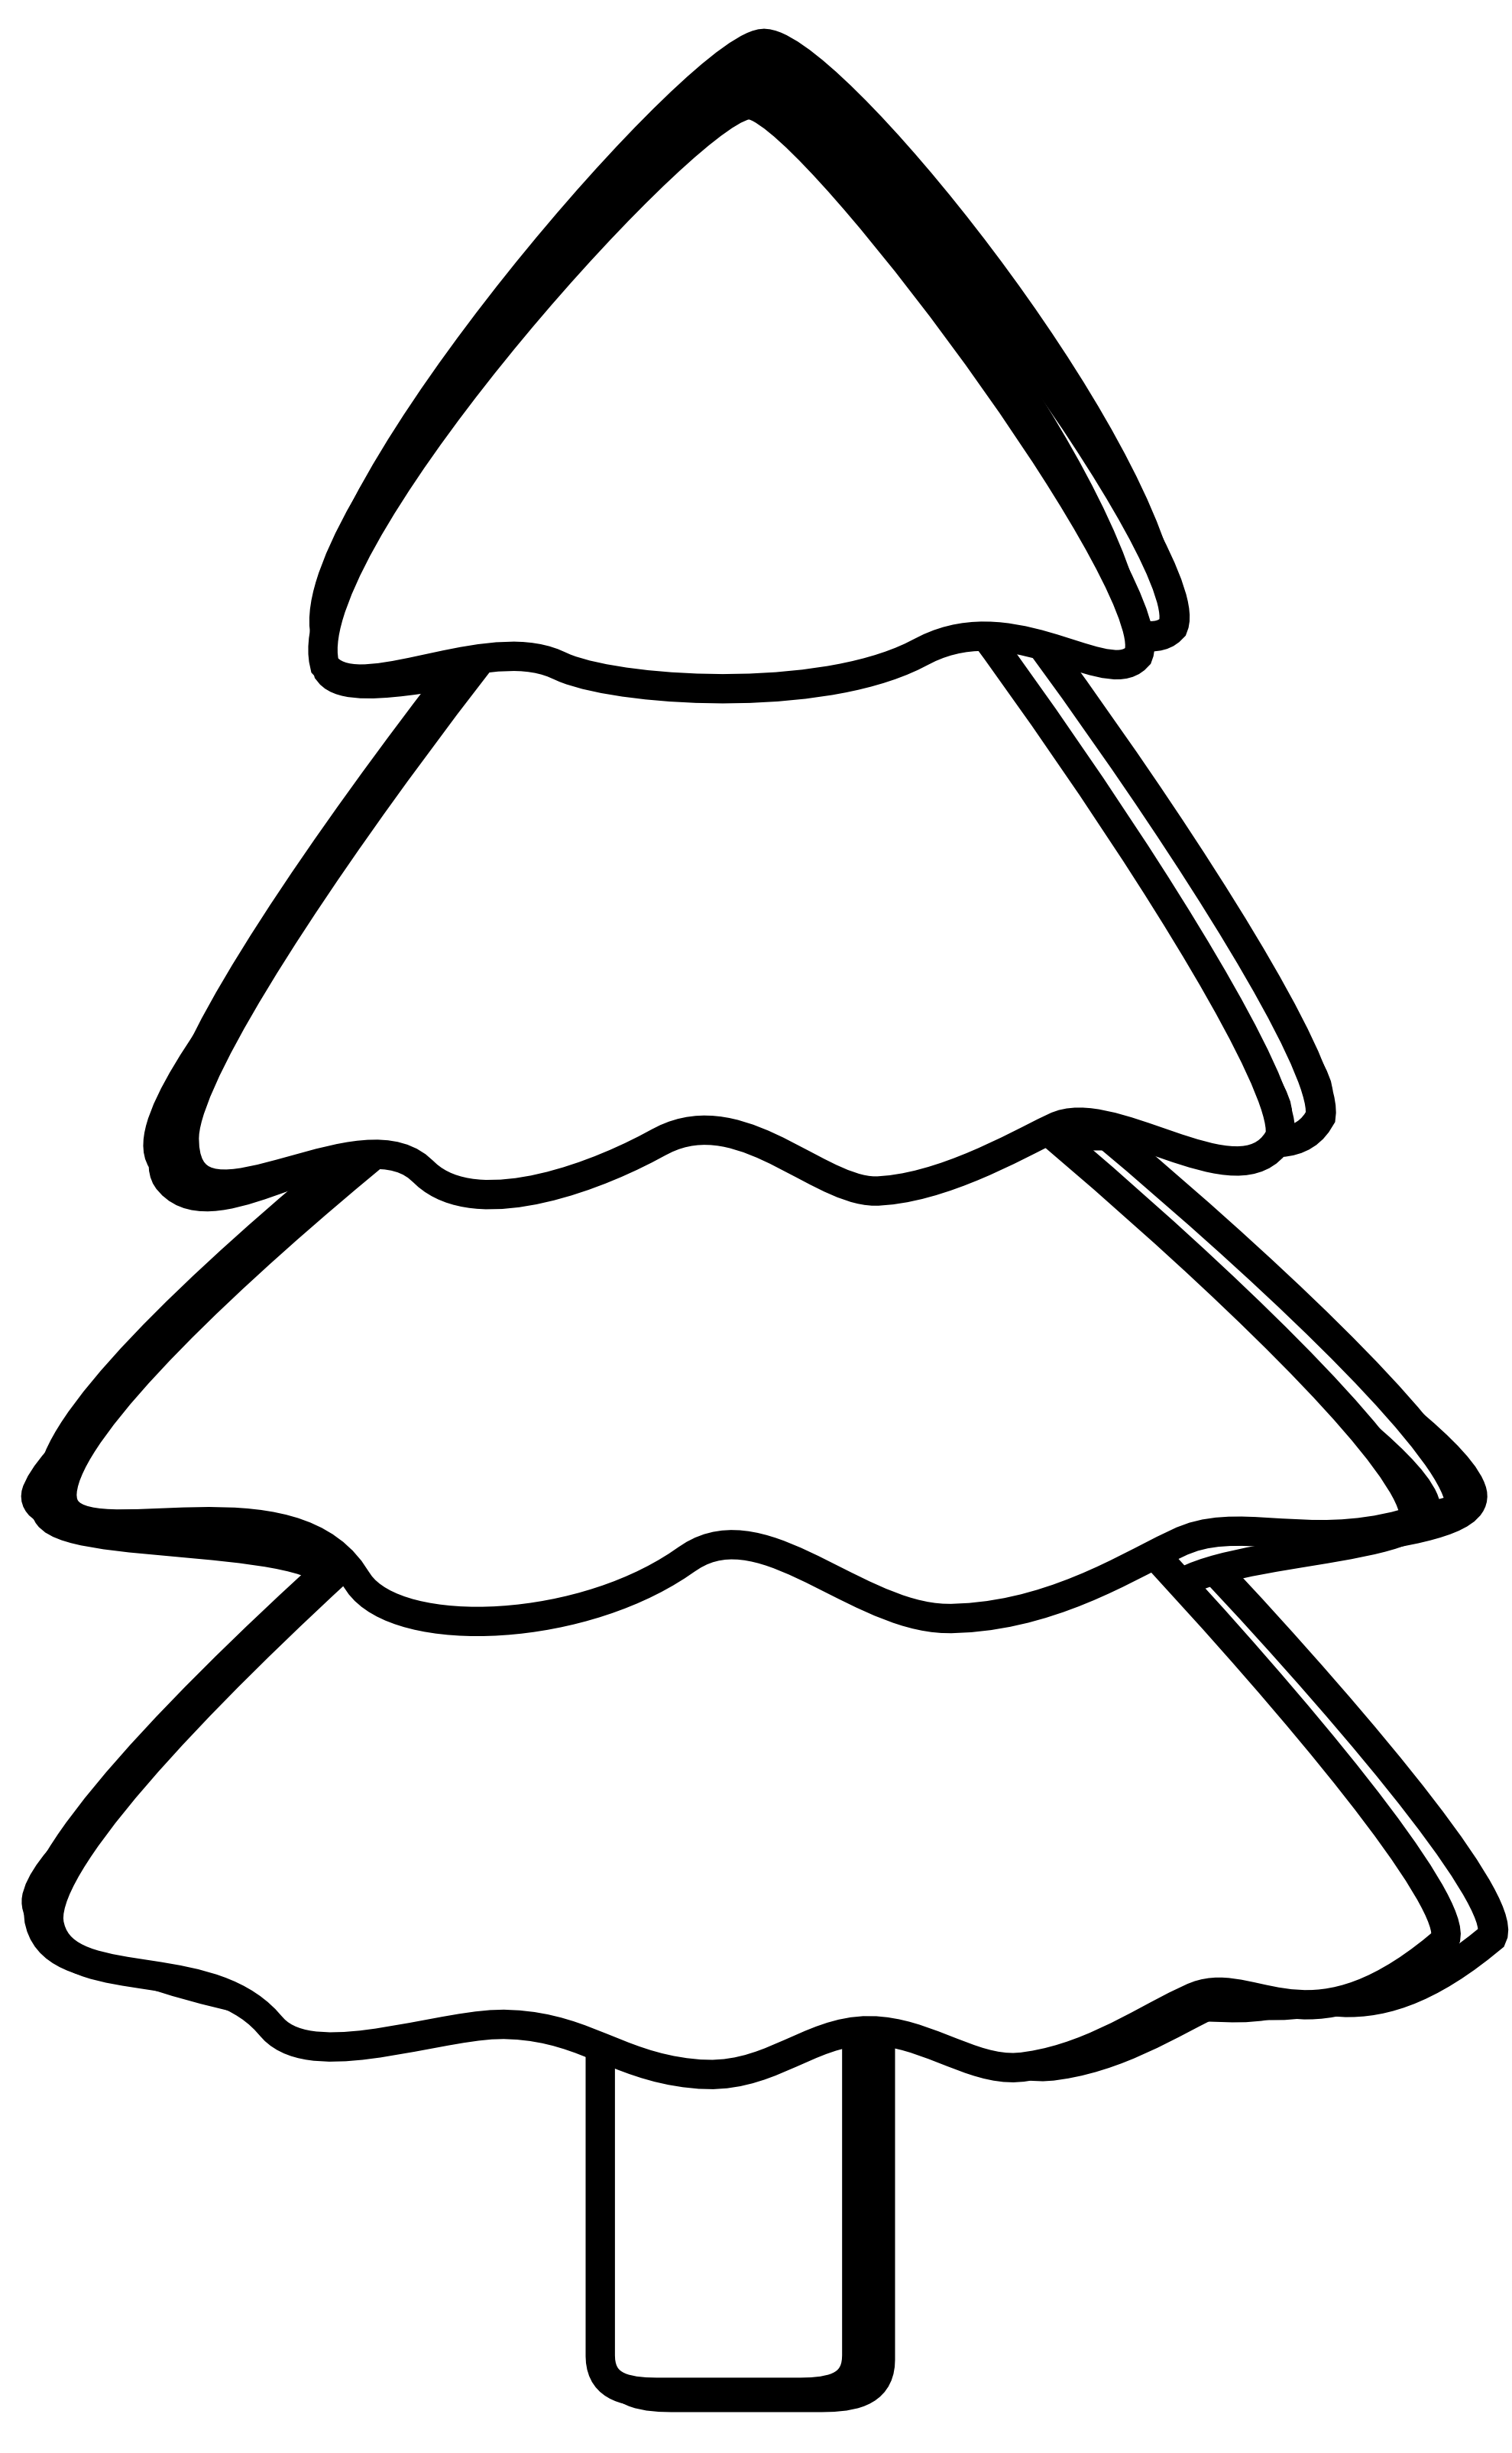 Fir tree clipart black and white free vector royalty free library Holly Clipart Black And White | Free download best Holly Clipart ... vector royalty free library